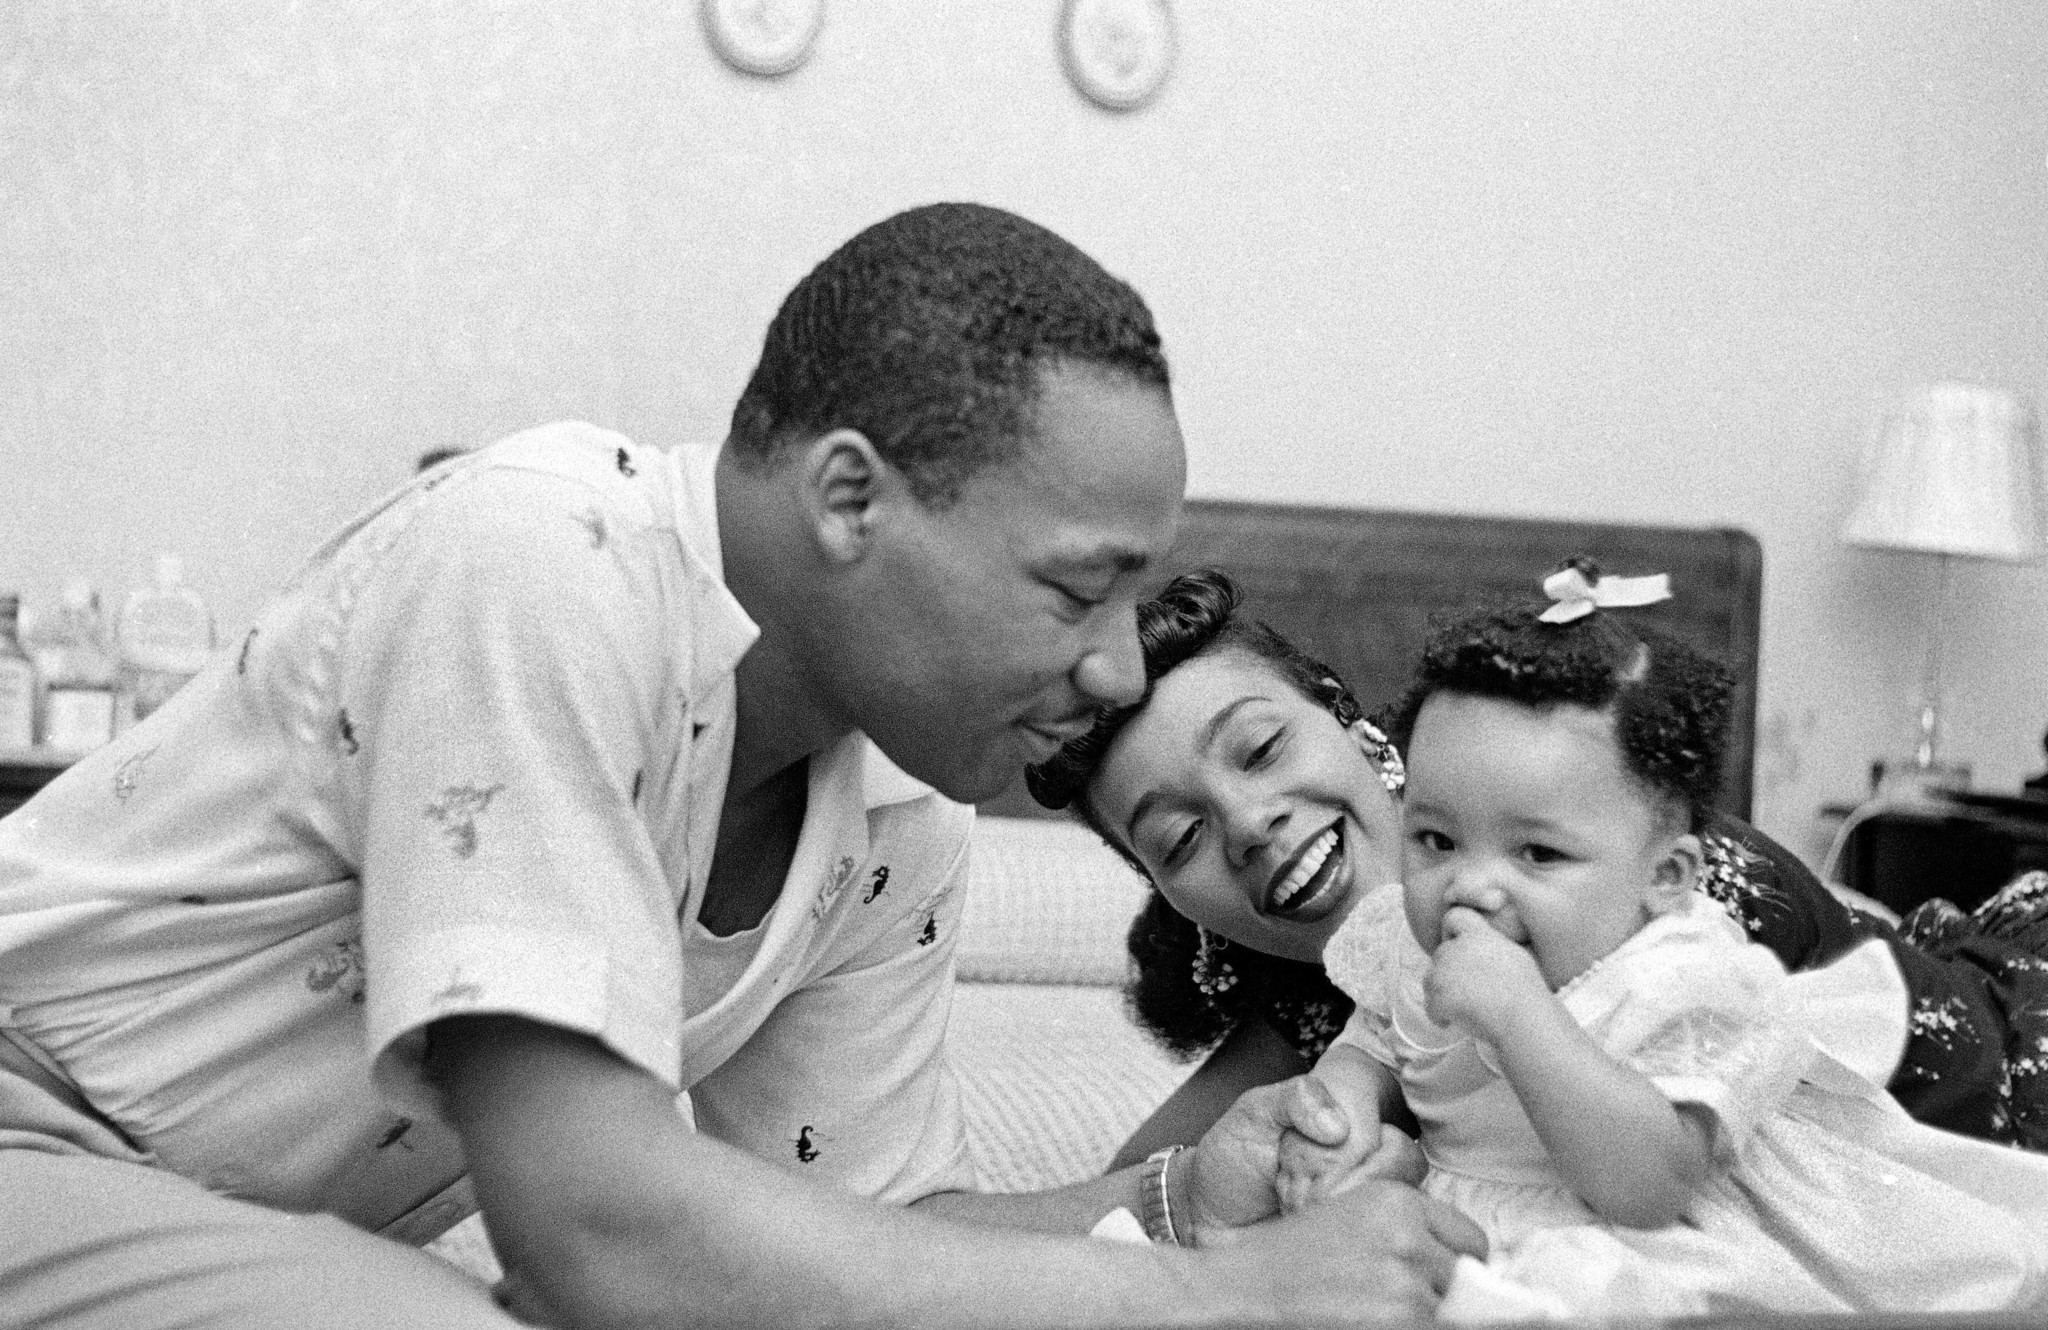 Martin Luther King Family 2014 A look back: Th...